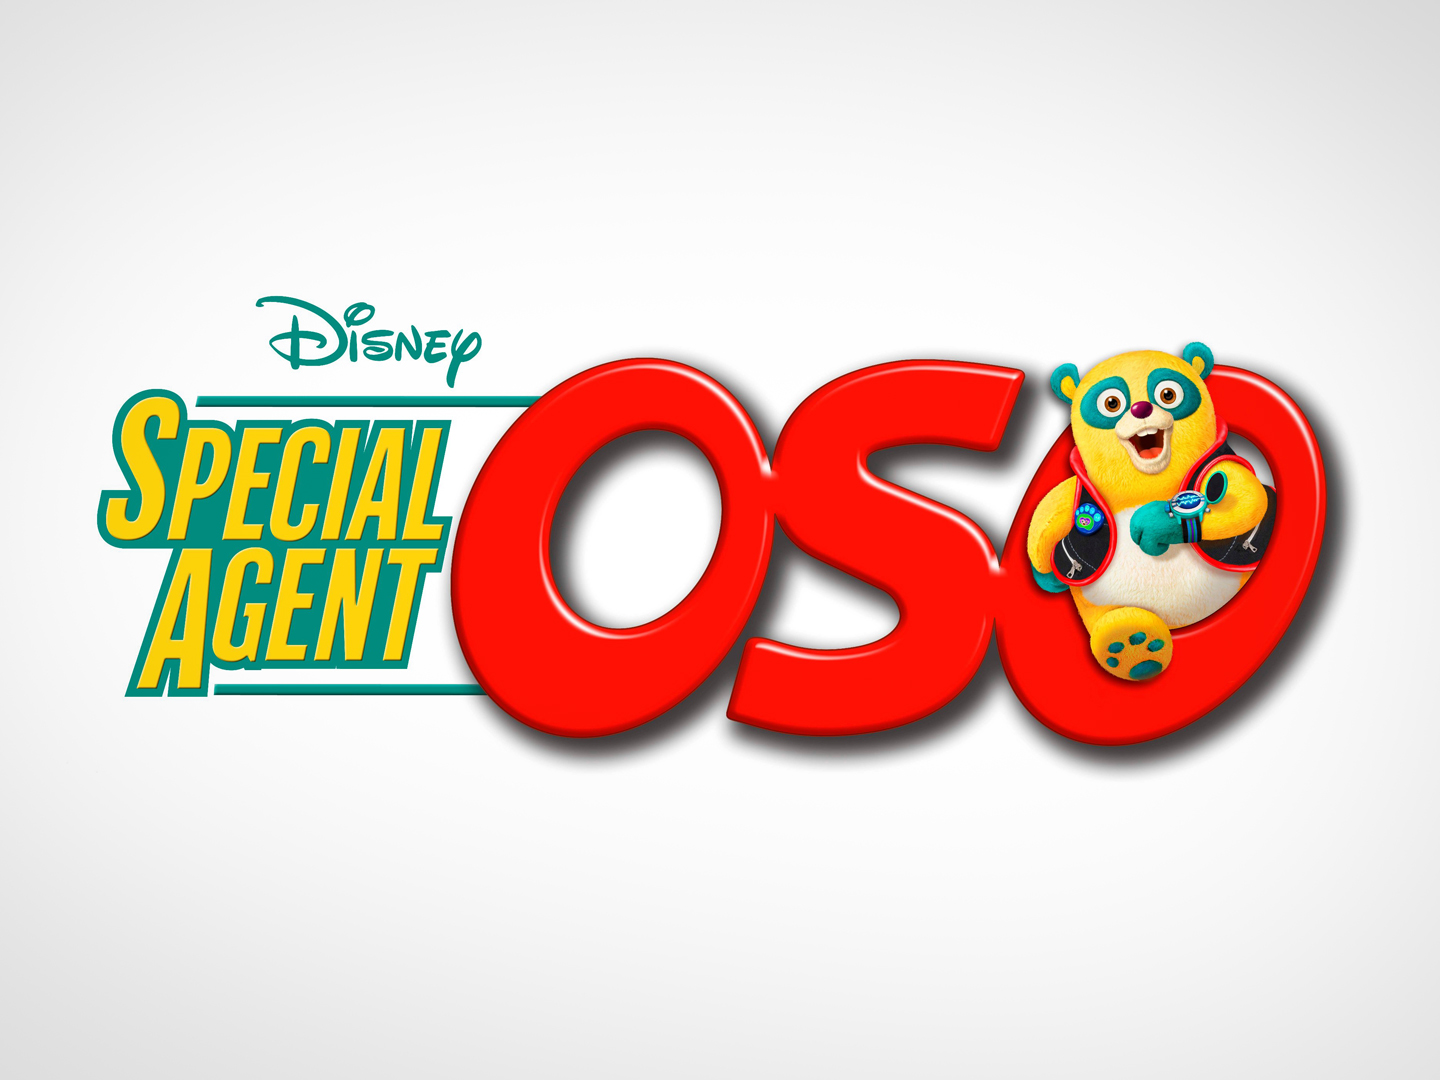 Disney's Special Agent OSO